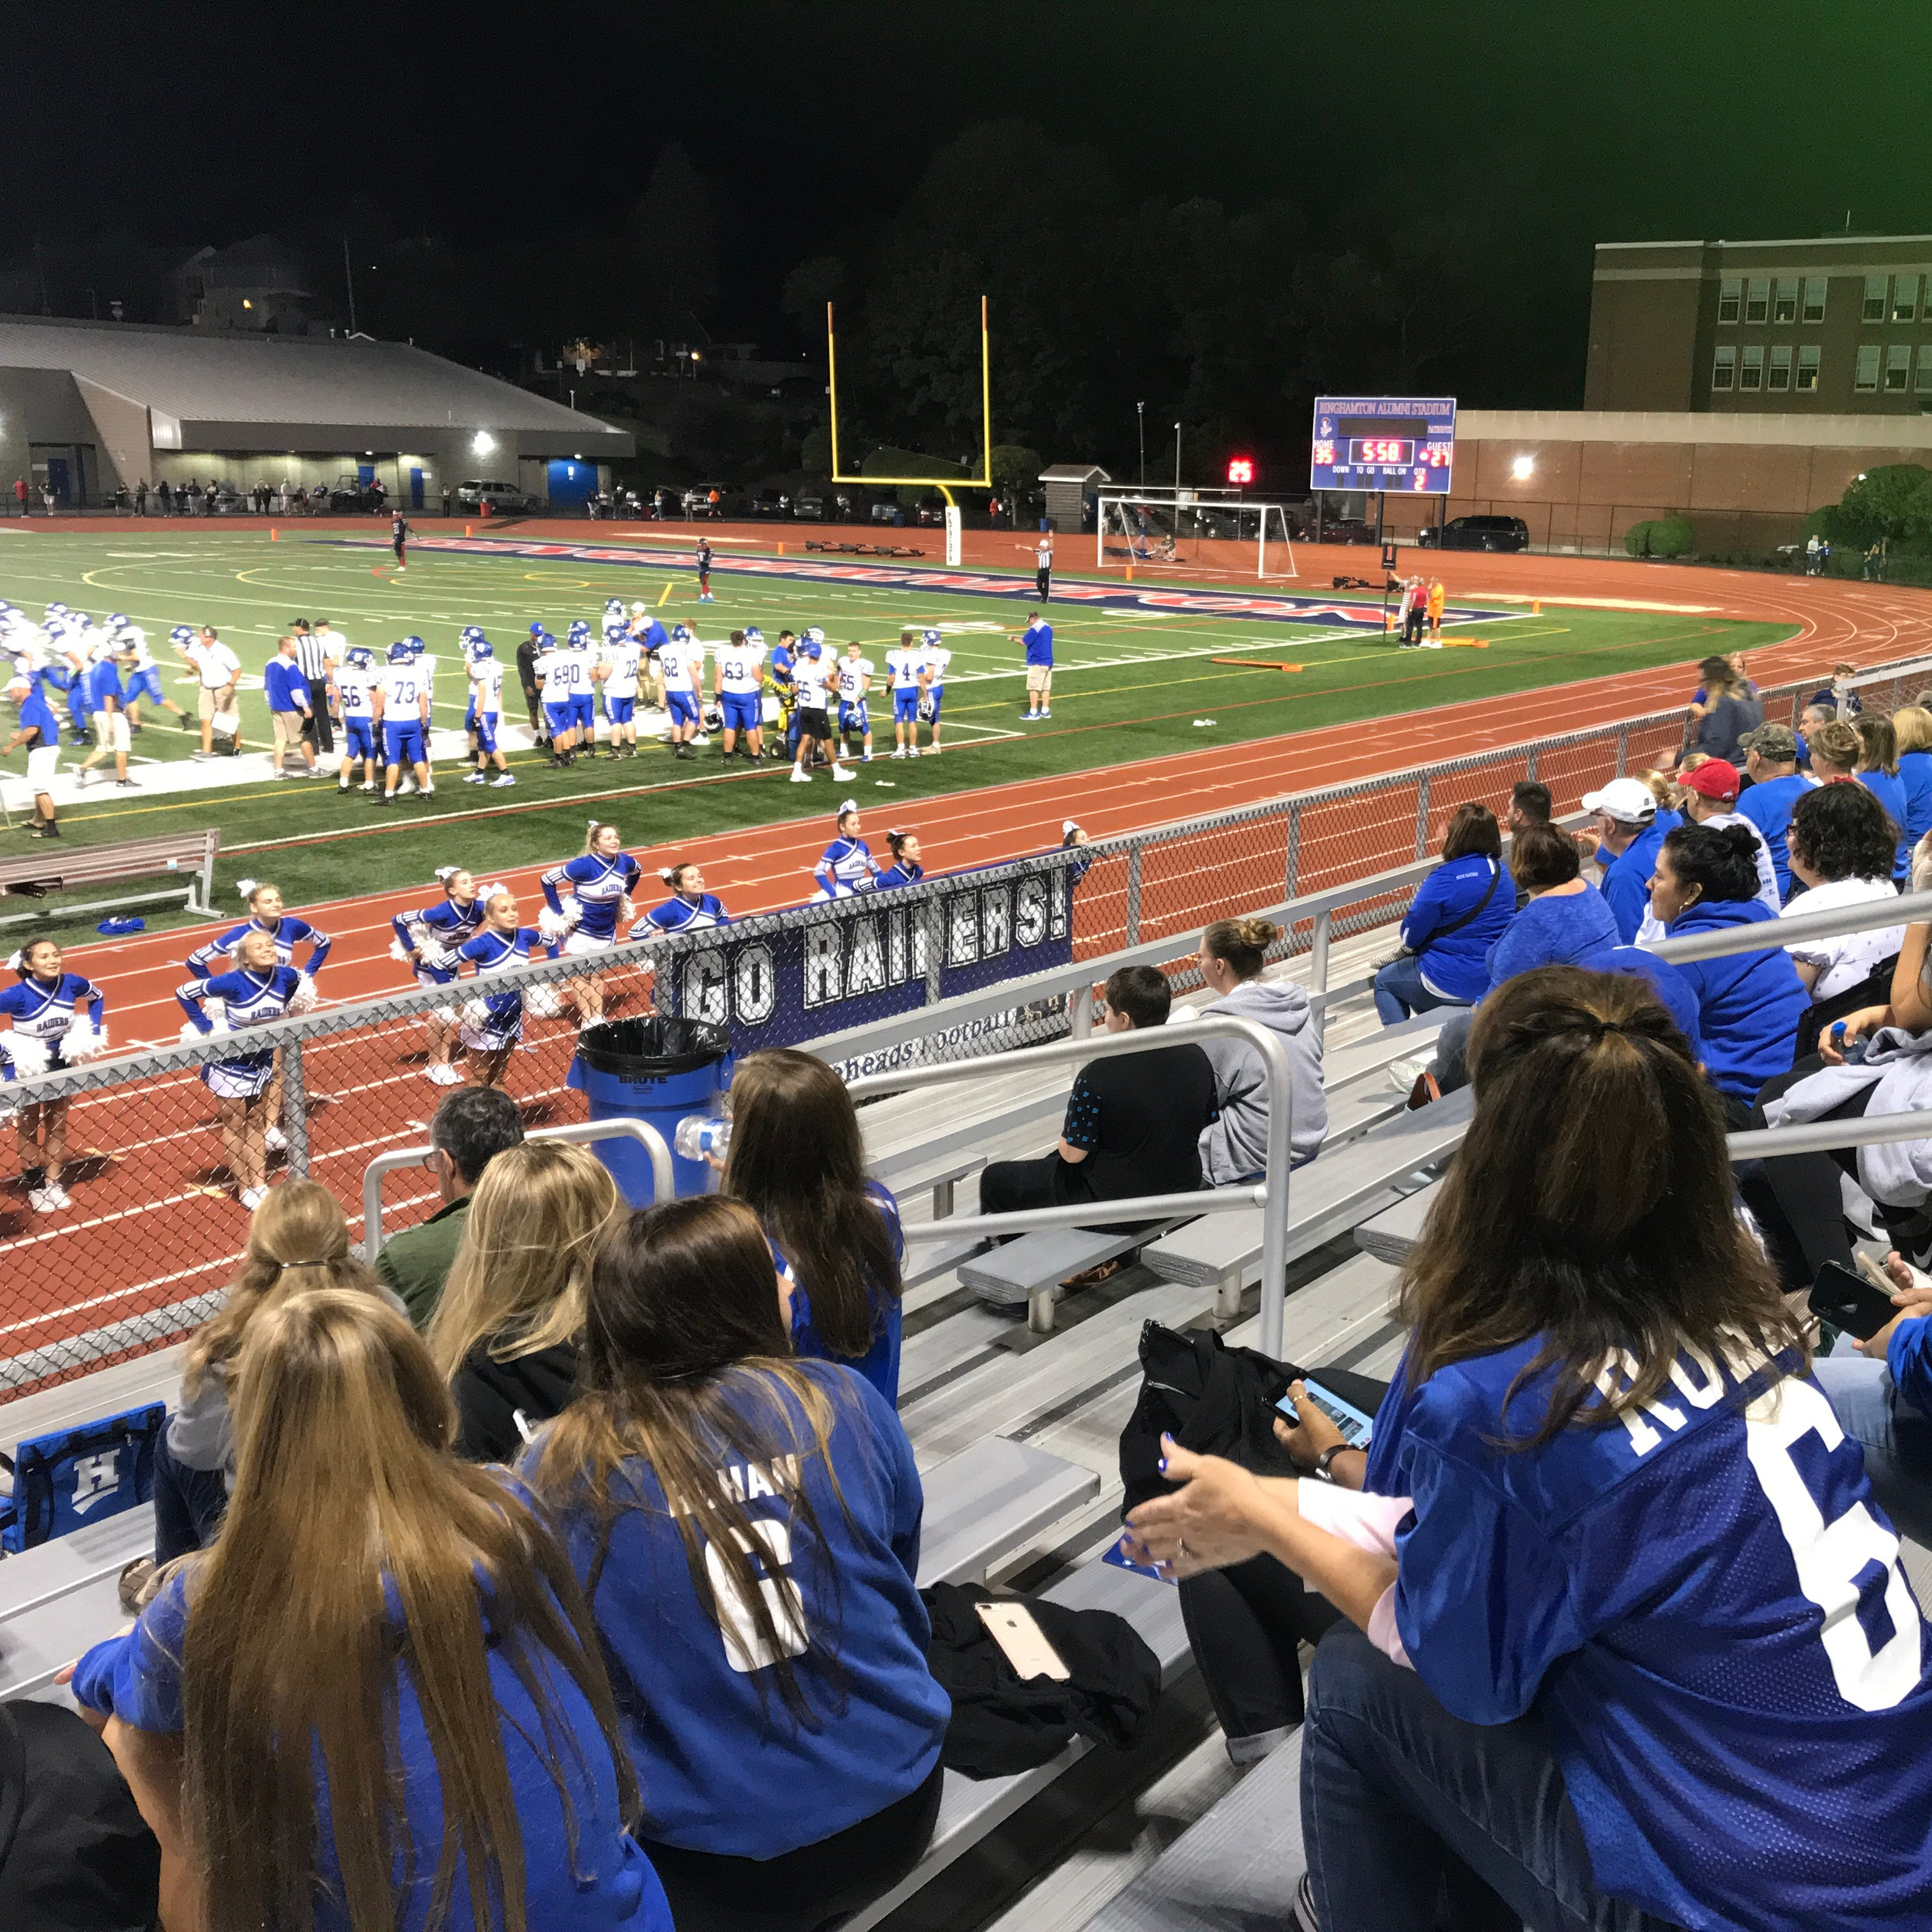 The 'Home Team': Billy Rohan's parents lead Horseheads fans on the sidelines